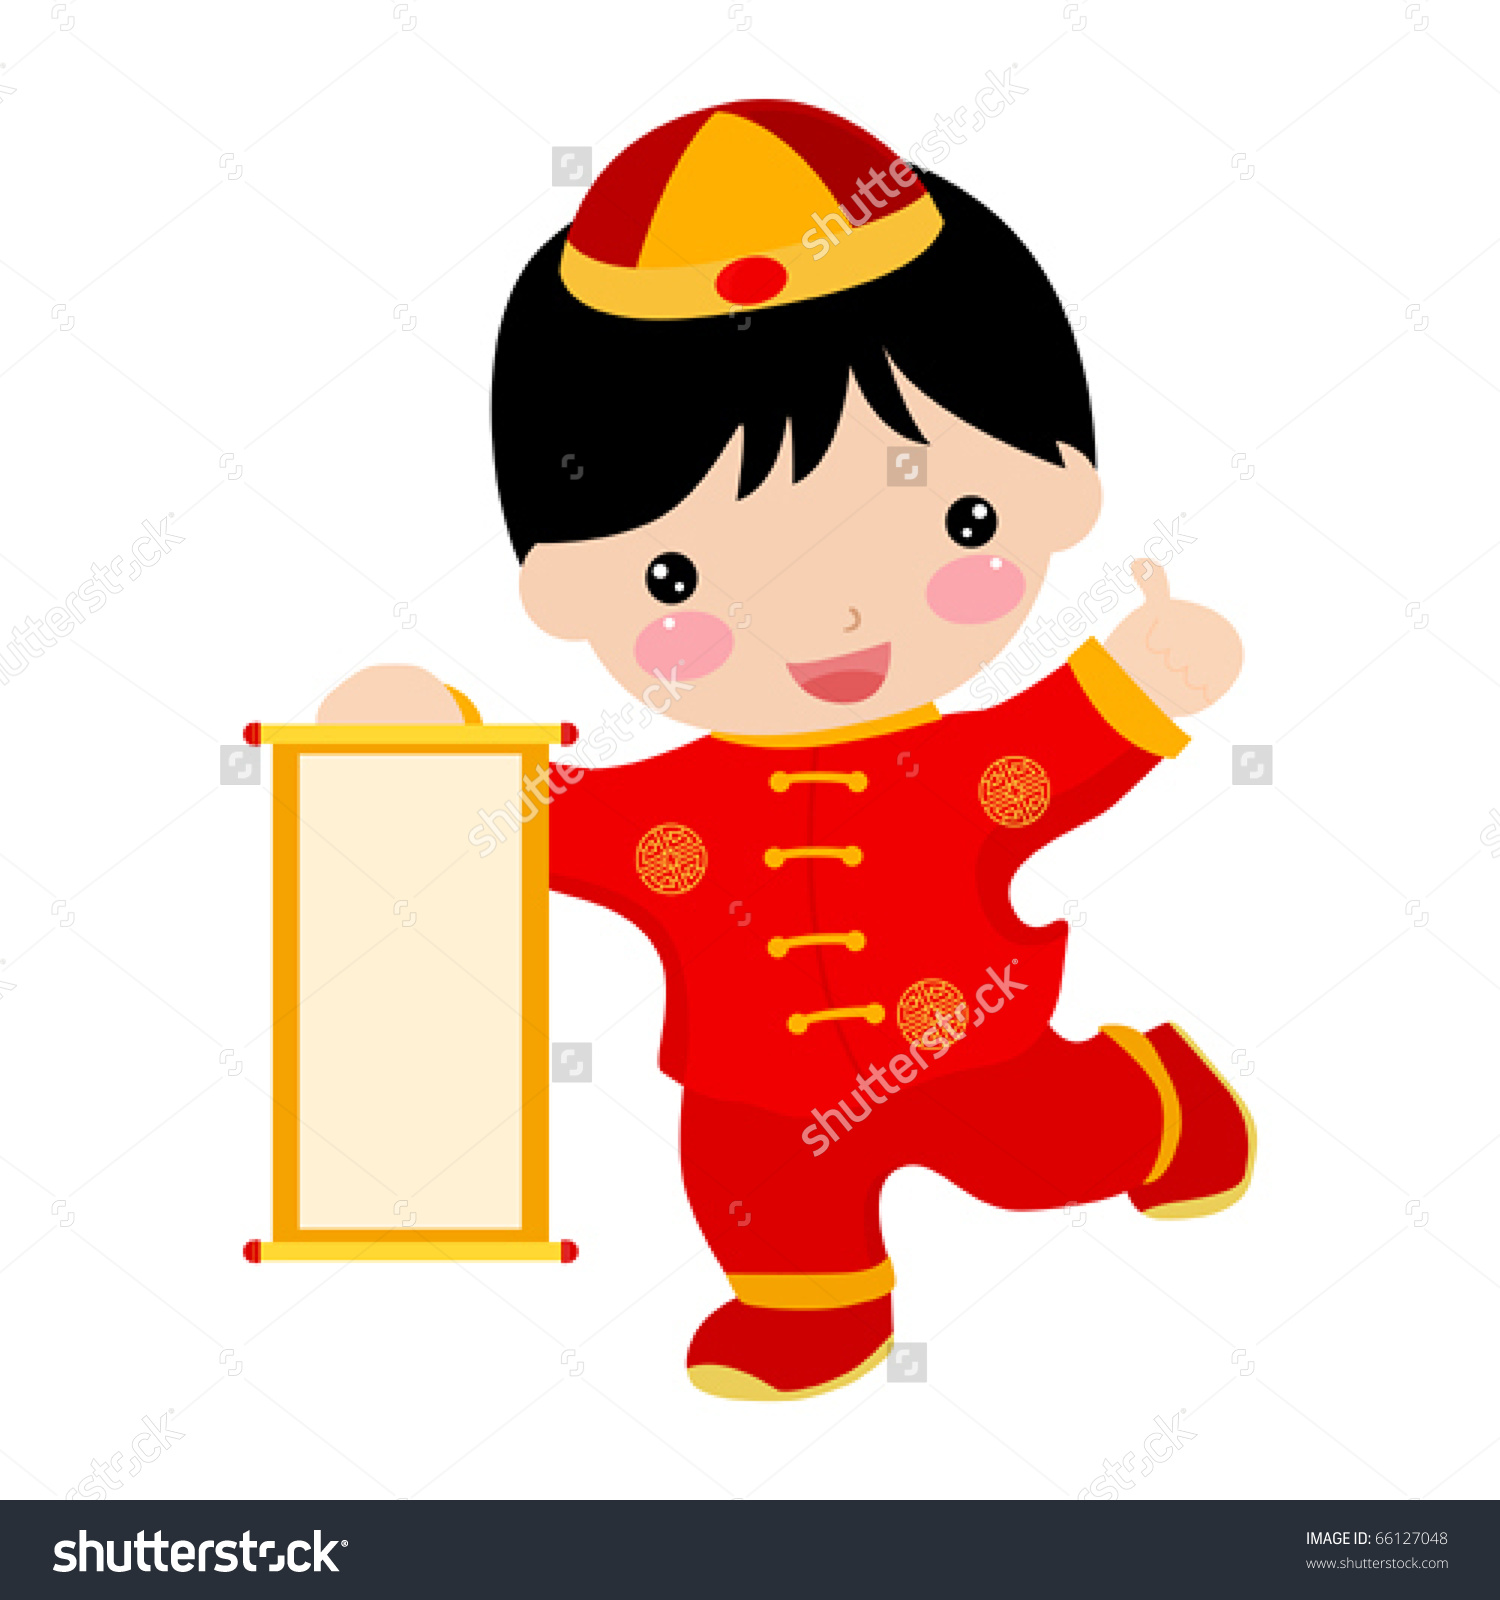 Chinese baby boy clipart.